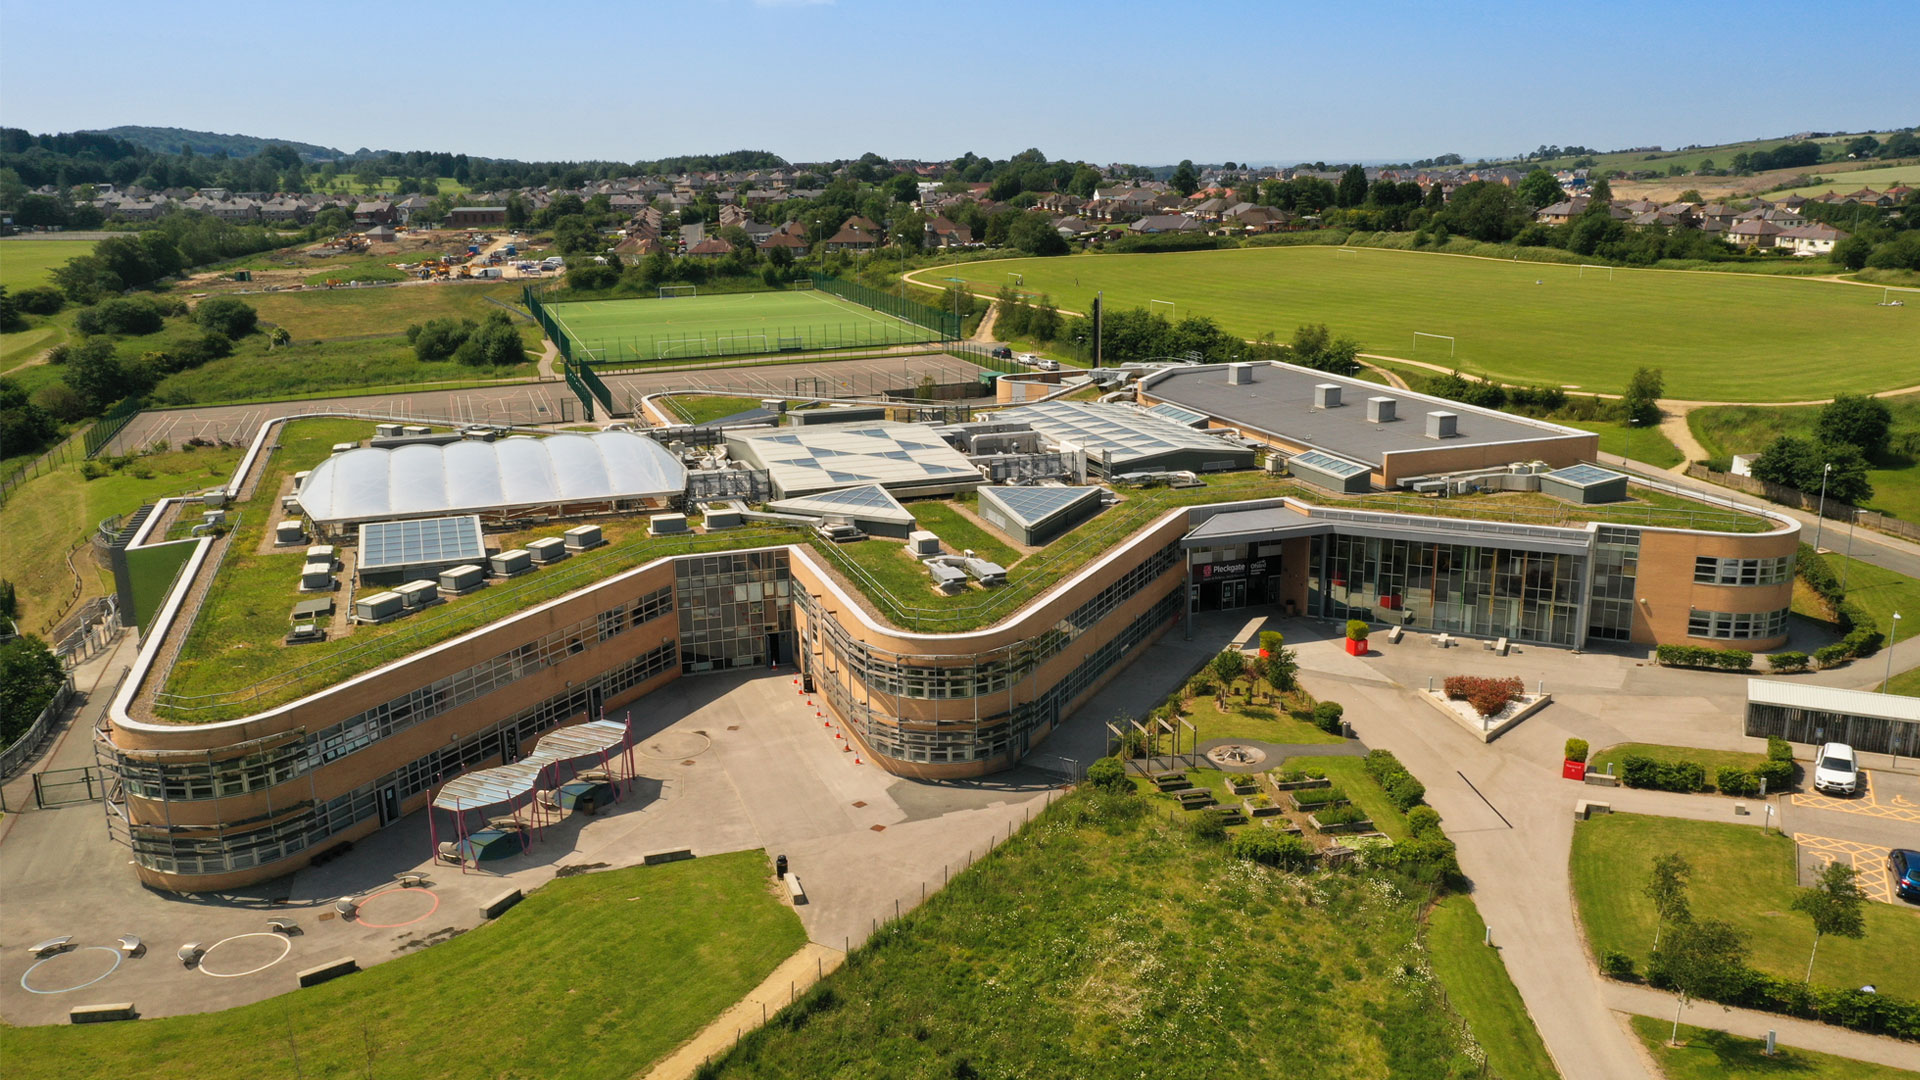 Pleckgate High School Rated Outstanding by Ofsted